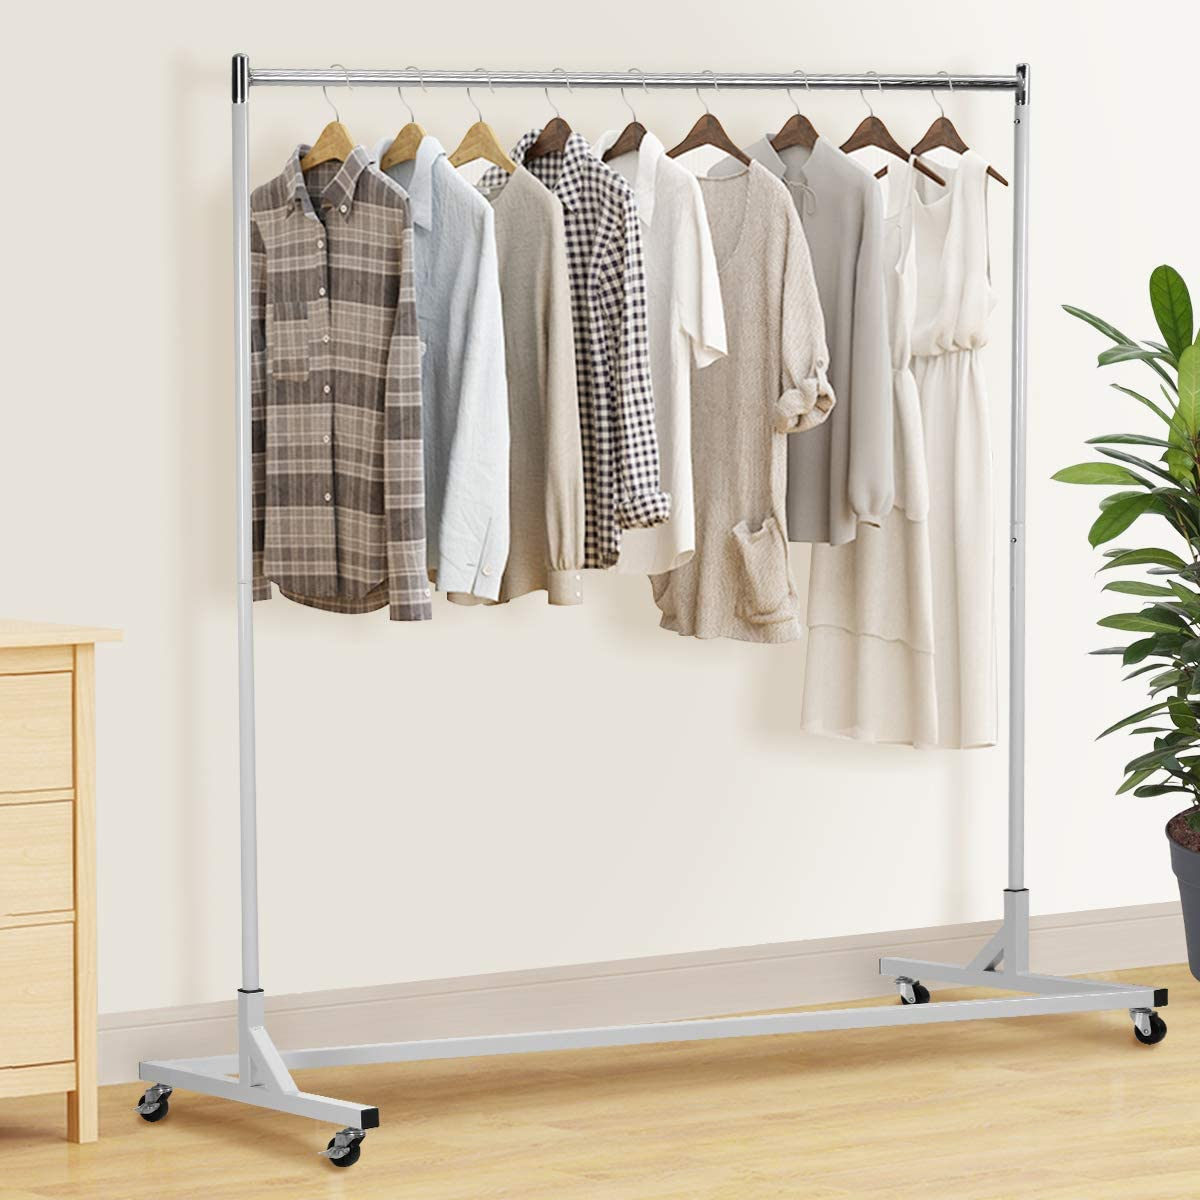 clothing garment rack clothes hanger double hanger clothes rolling rack on wheels